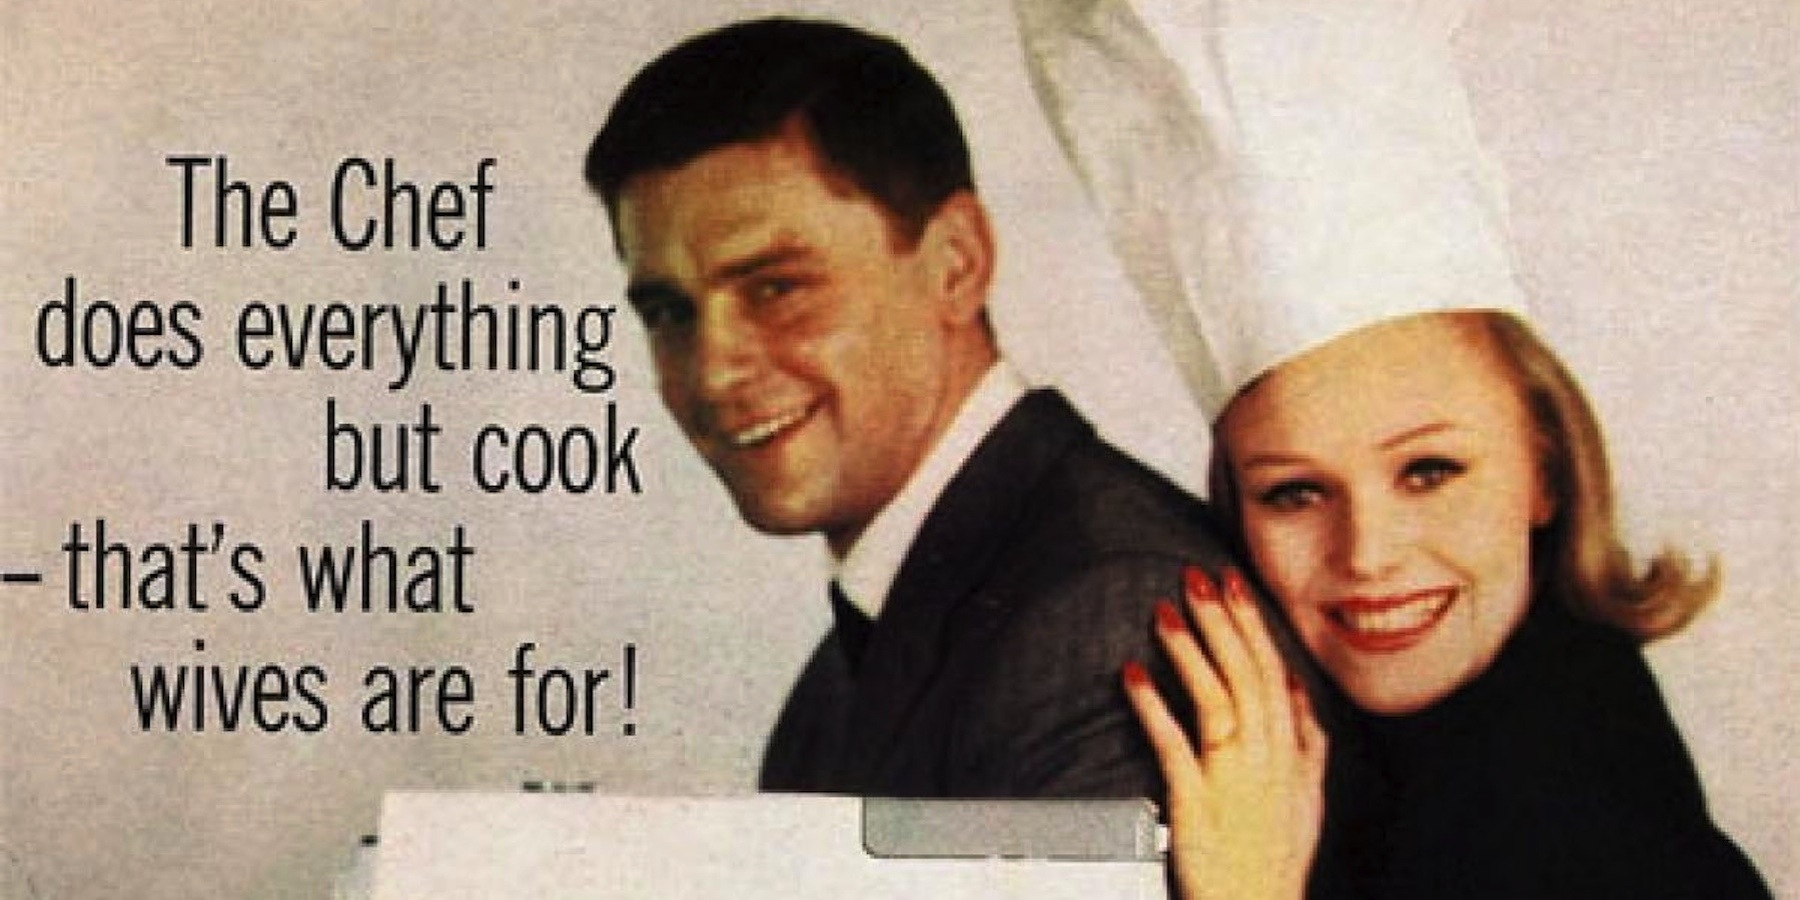 15 Ridiculously Sexist Vintage Ads You Won't Believe Are Real